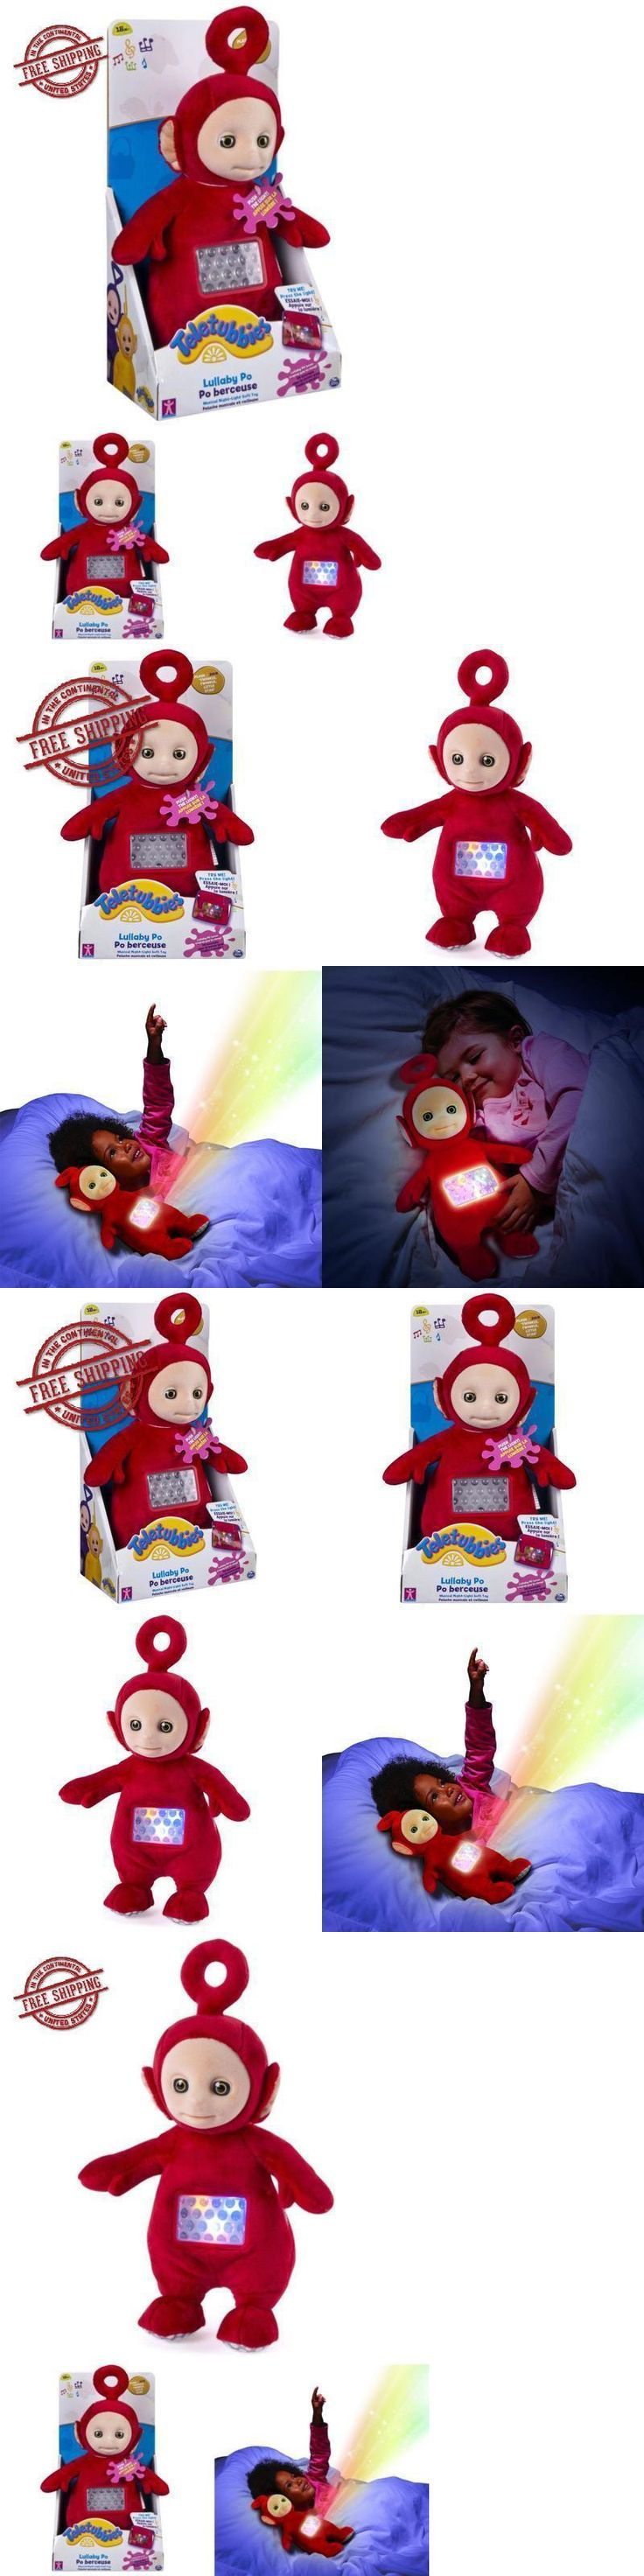 Teletubbies 756: New Teletubbies 10 Lullaby Po Loveable Soft Toy To Ease Your Child To Sleep -> BUY IT NOW ONLY: $31.9 on eBay!